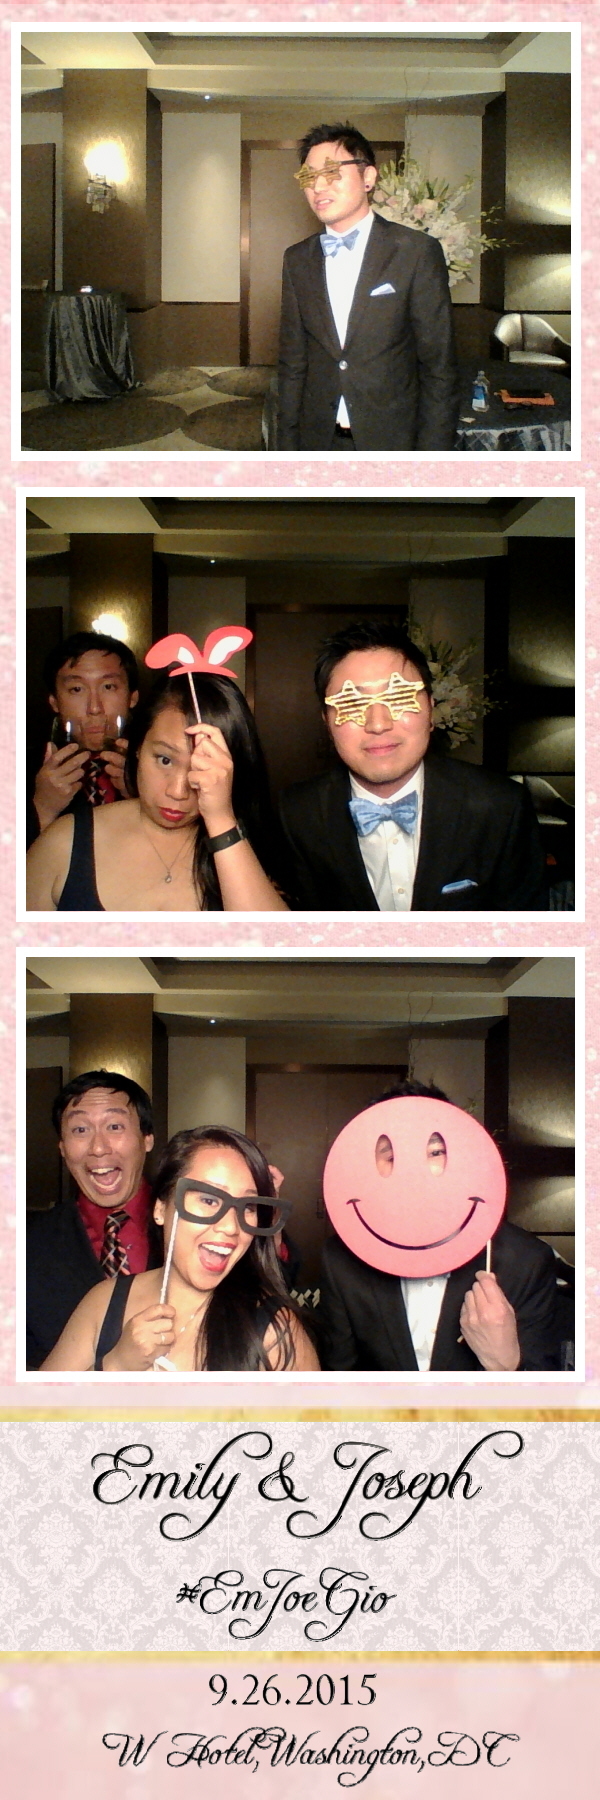 Guest House Events Photo Booth E&J (2).jpg